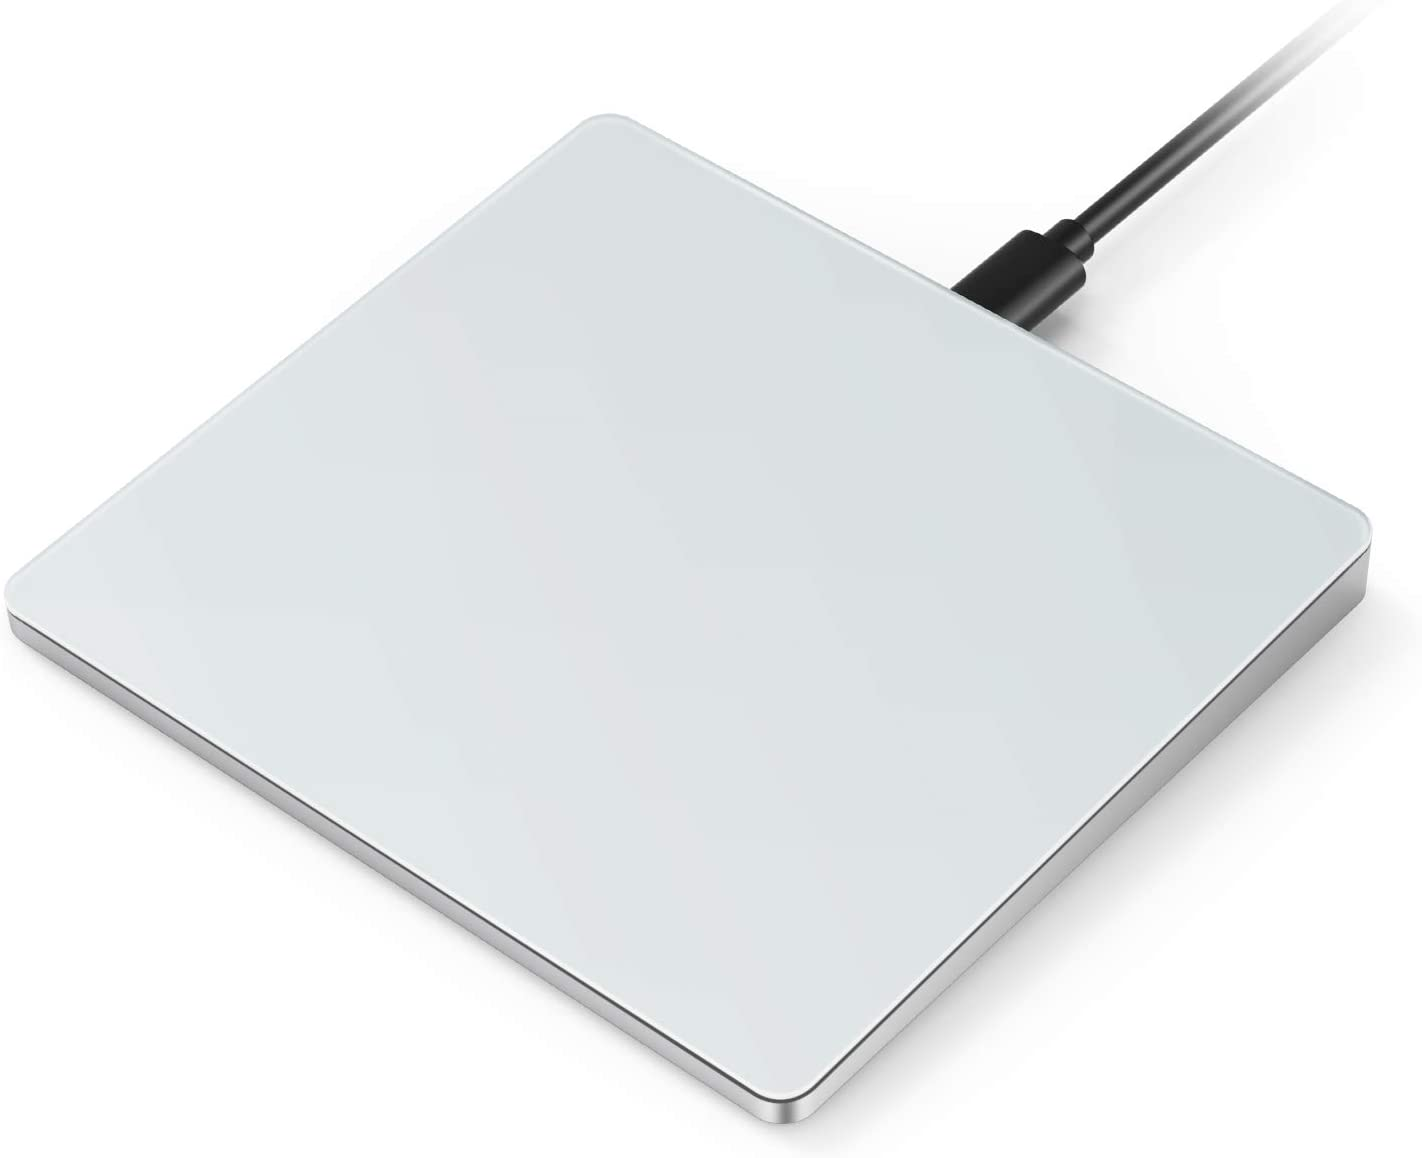 USB Touchpad, Jelly Comb Multi-Touch Wired Precision Trackpad for Windows 7 and Windows 10 Computer, Notebook, PC, Laptop